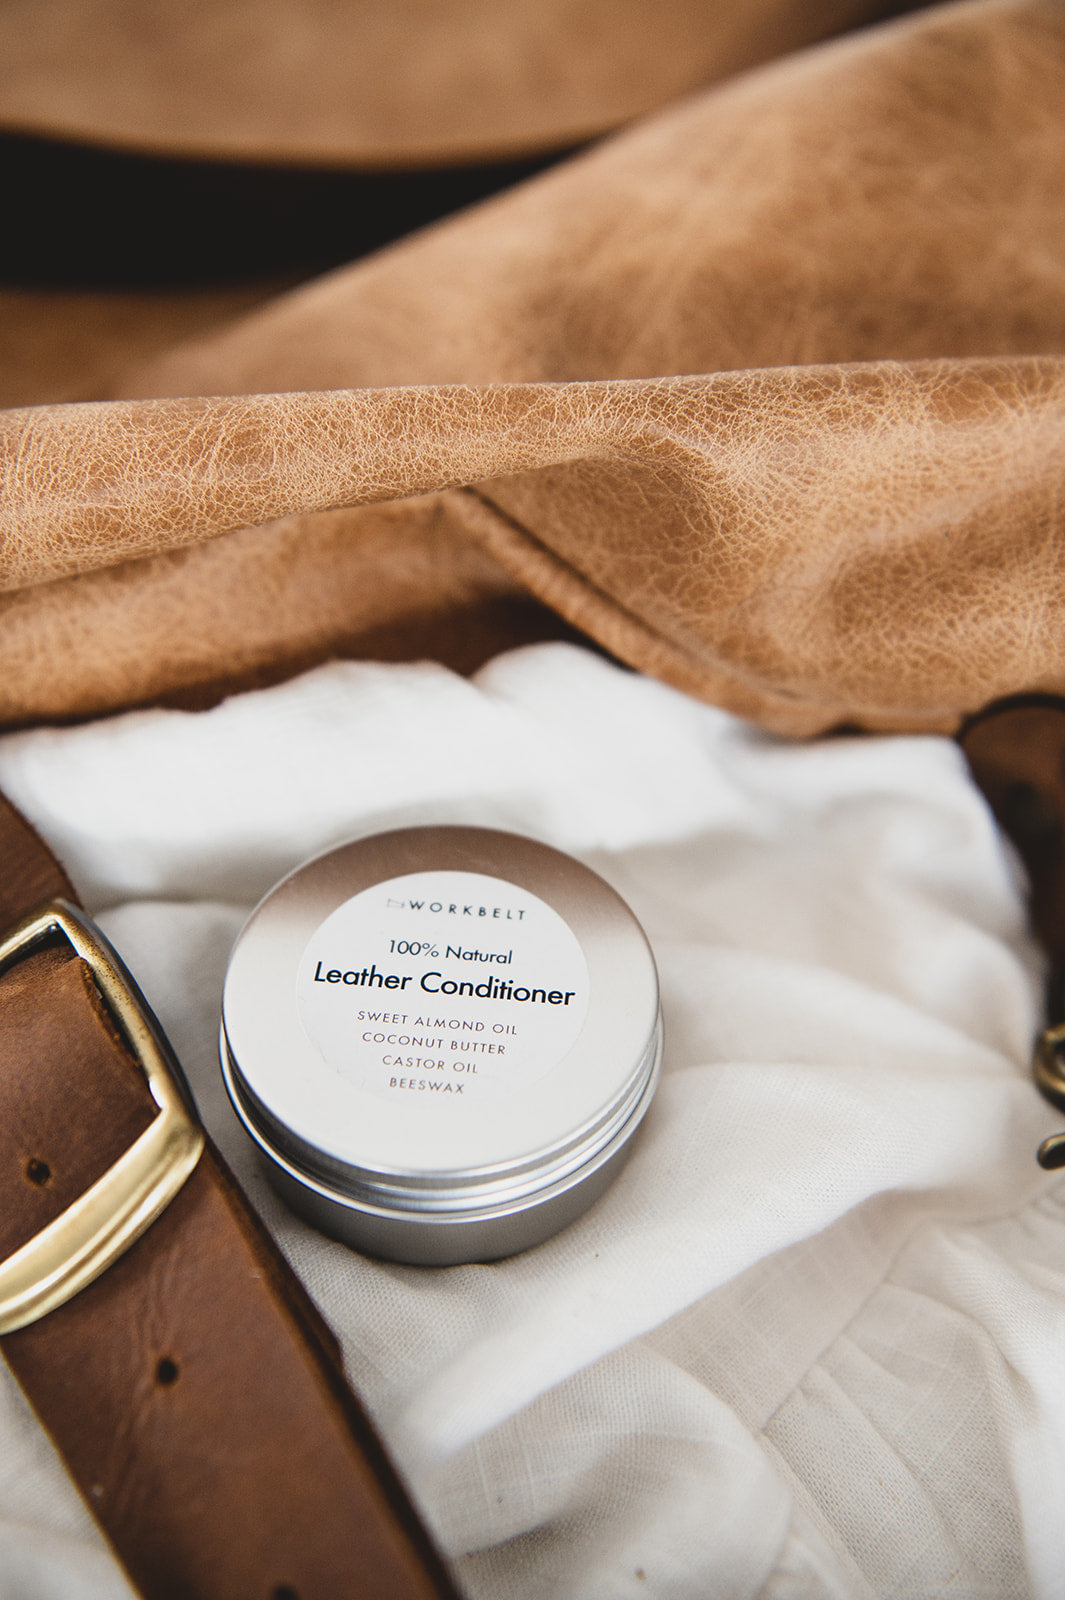 100% Natural Leather Conditioner 50g - Shop Leather Handbags, clutches & carryalls online | Made in Australia | Workbelt